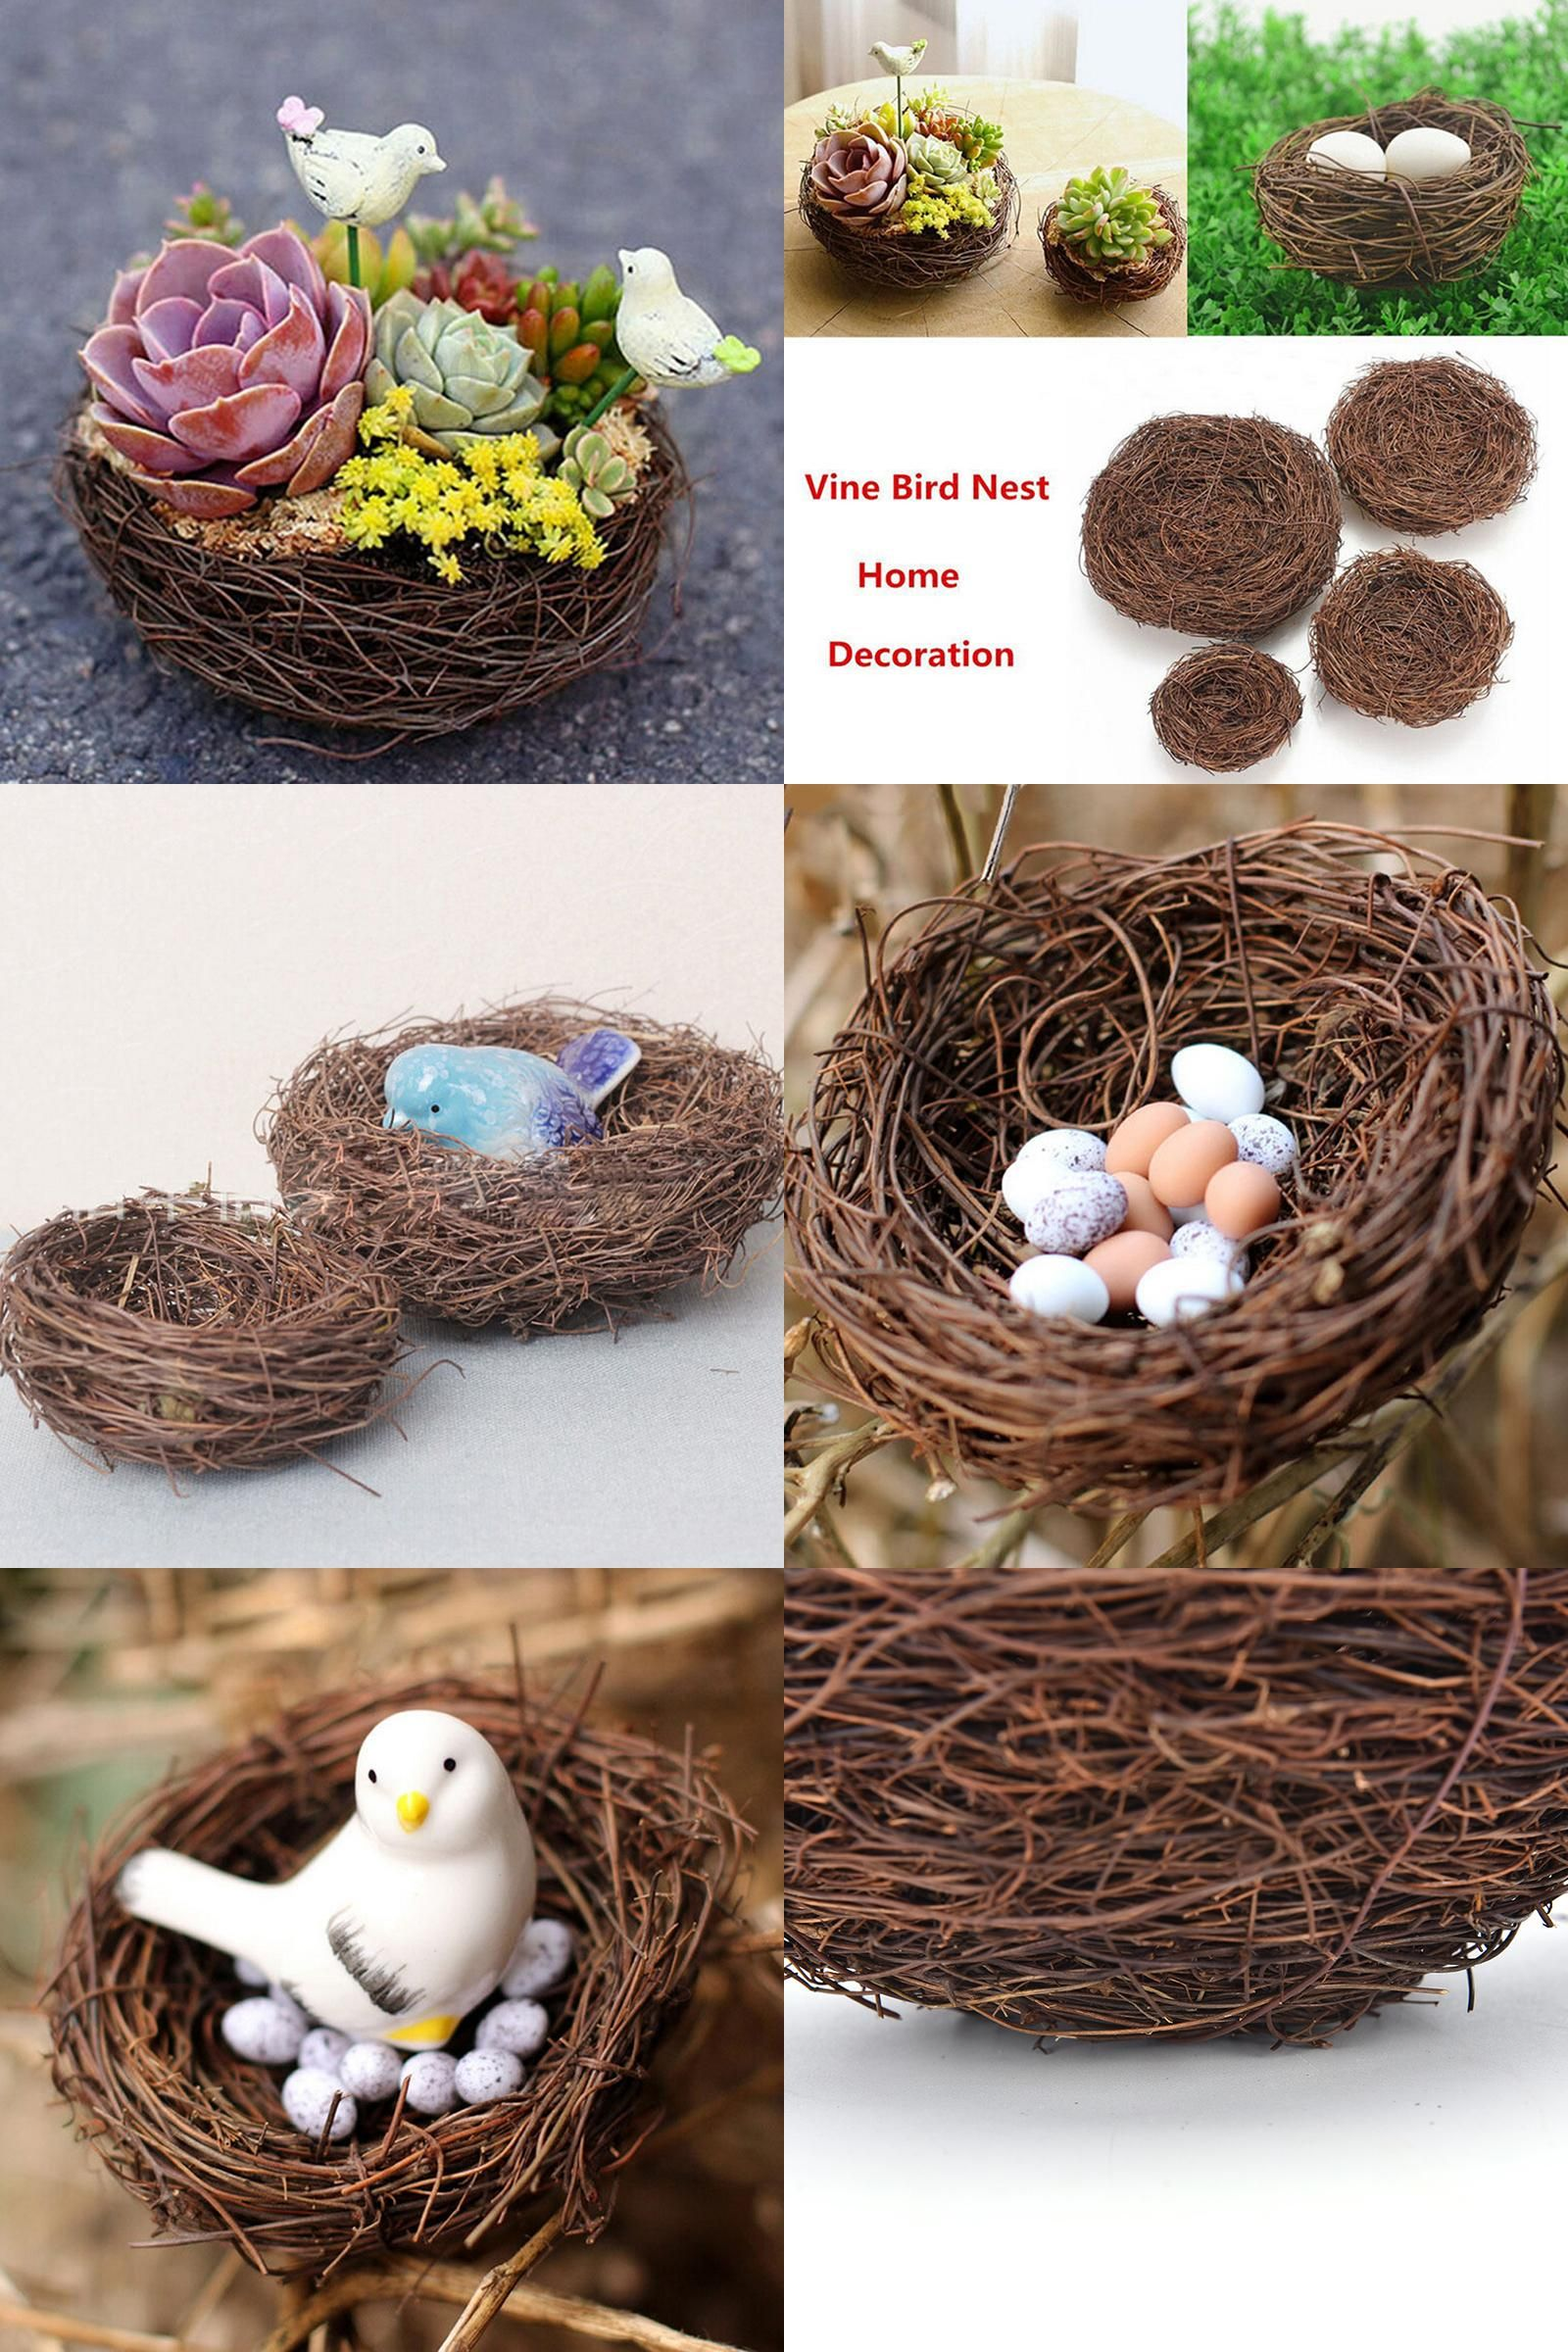 [Visit To Buy] 2017 1Pcs New Handmade Vine Brown Bird Nest House Home Nature